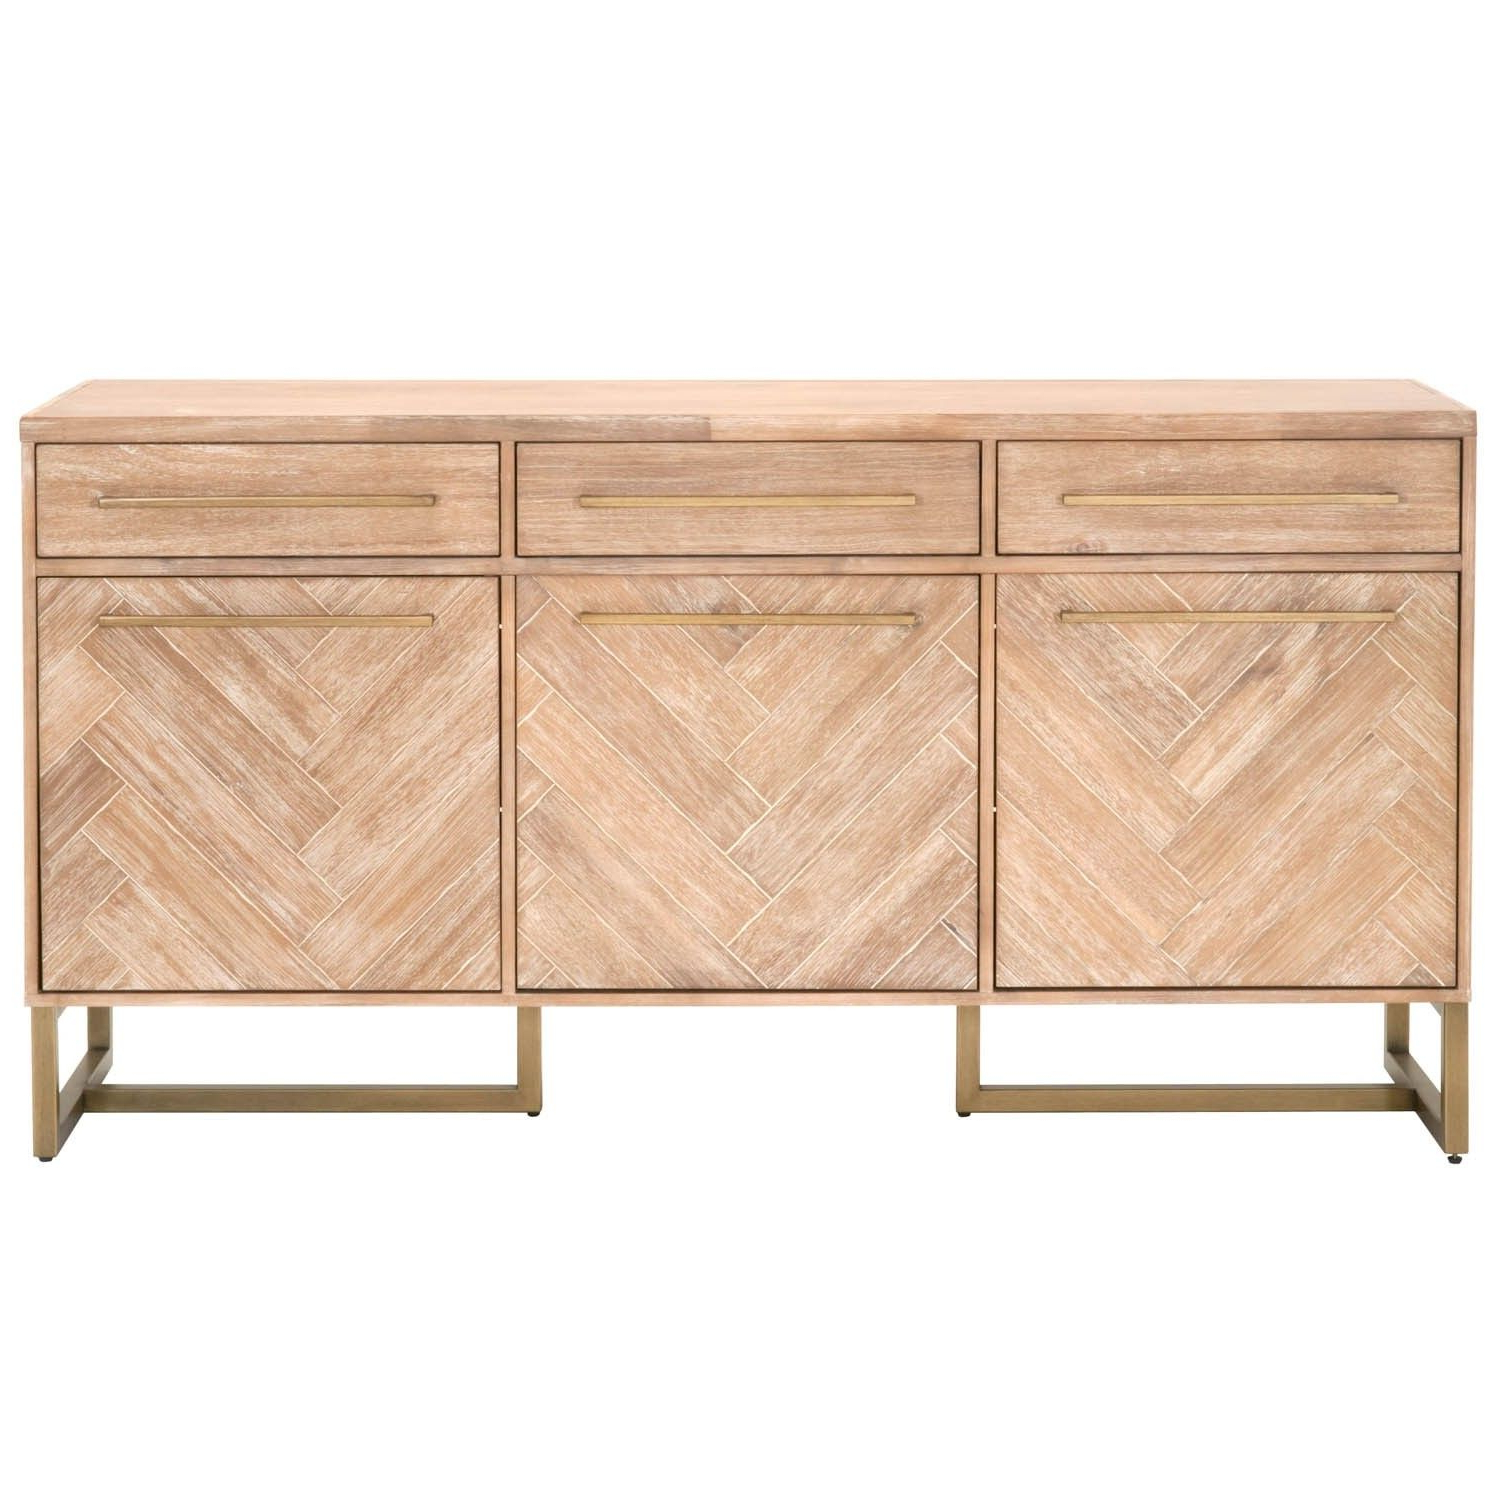 Candelabra Home Mosaic Sideboard – Stone Wash | Indian Creek Pertaining To Retro Holistic Credenzas (View 20 of 20)